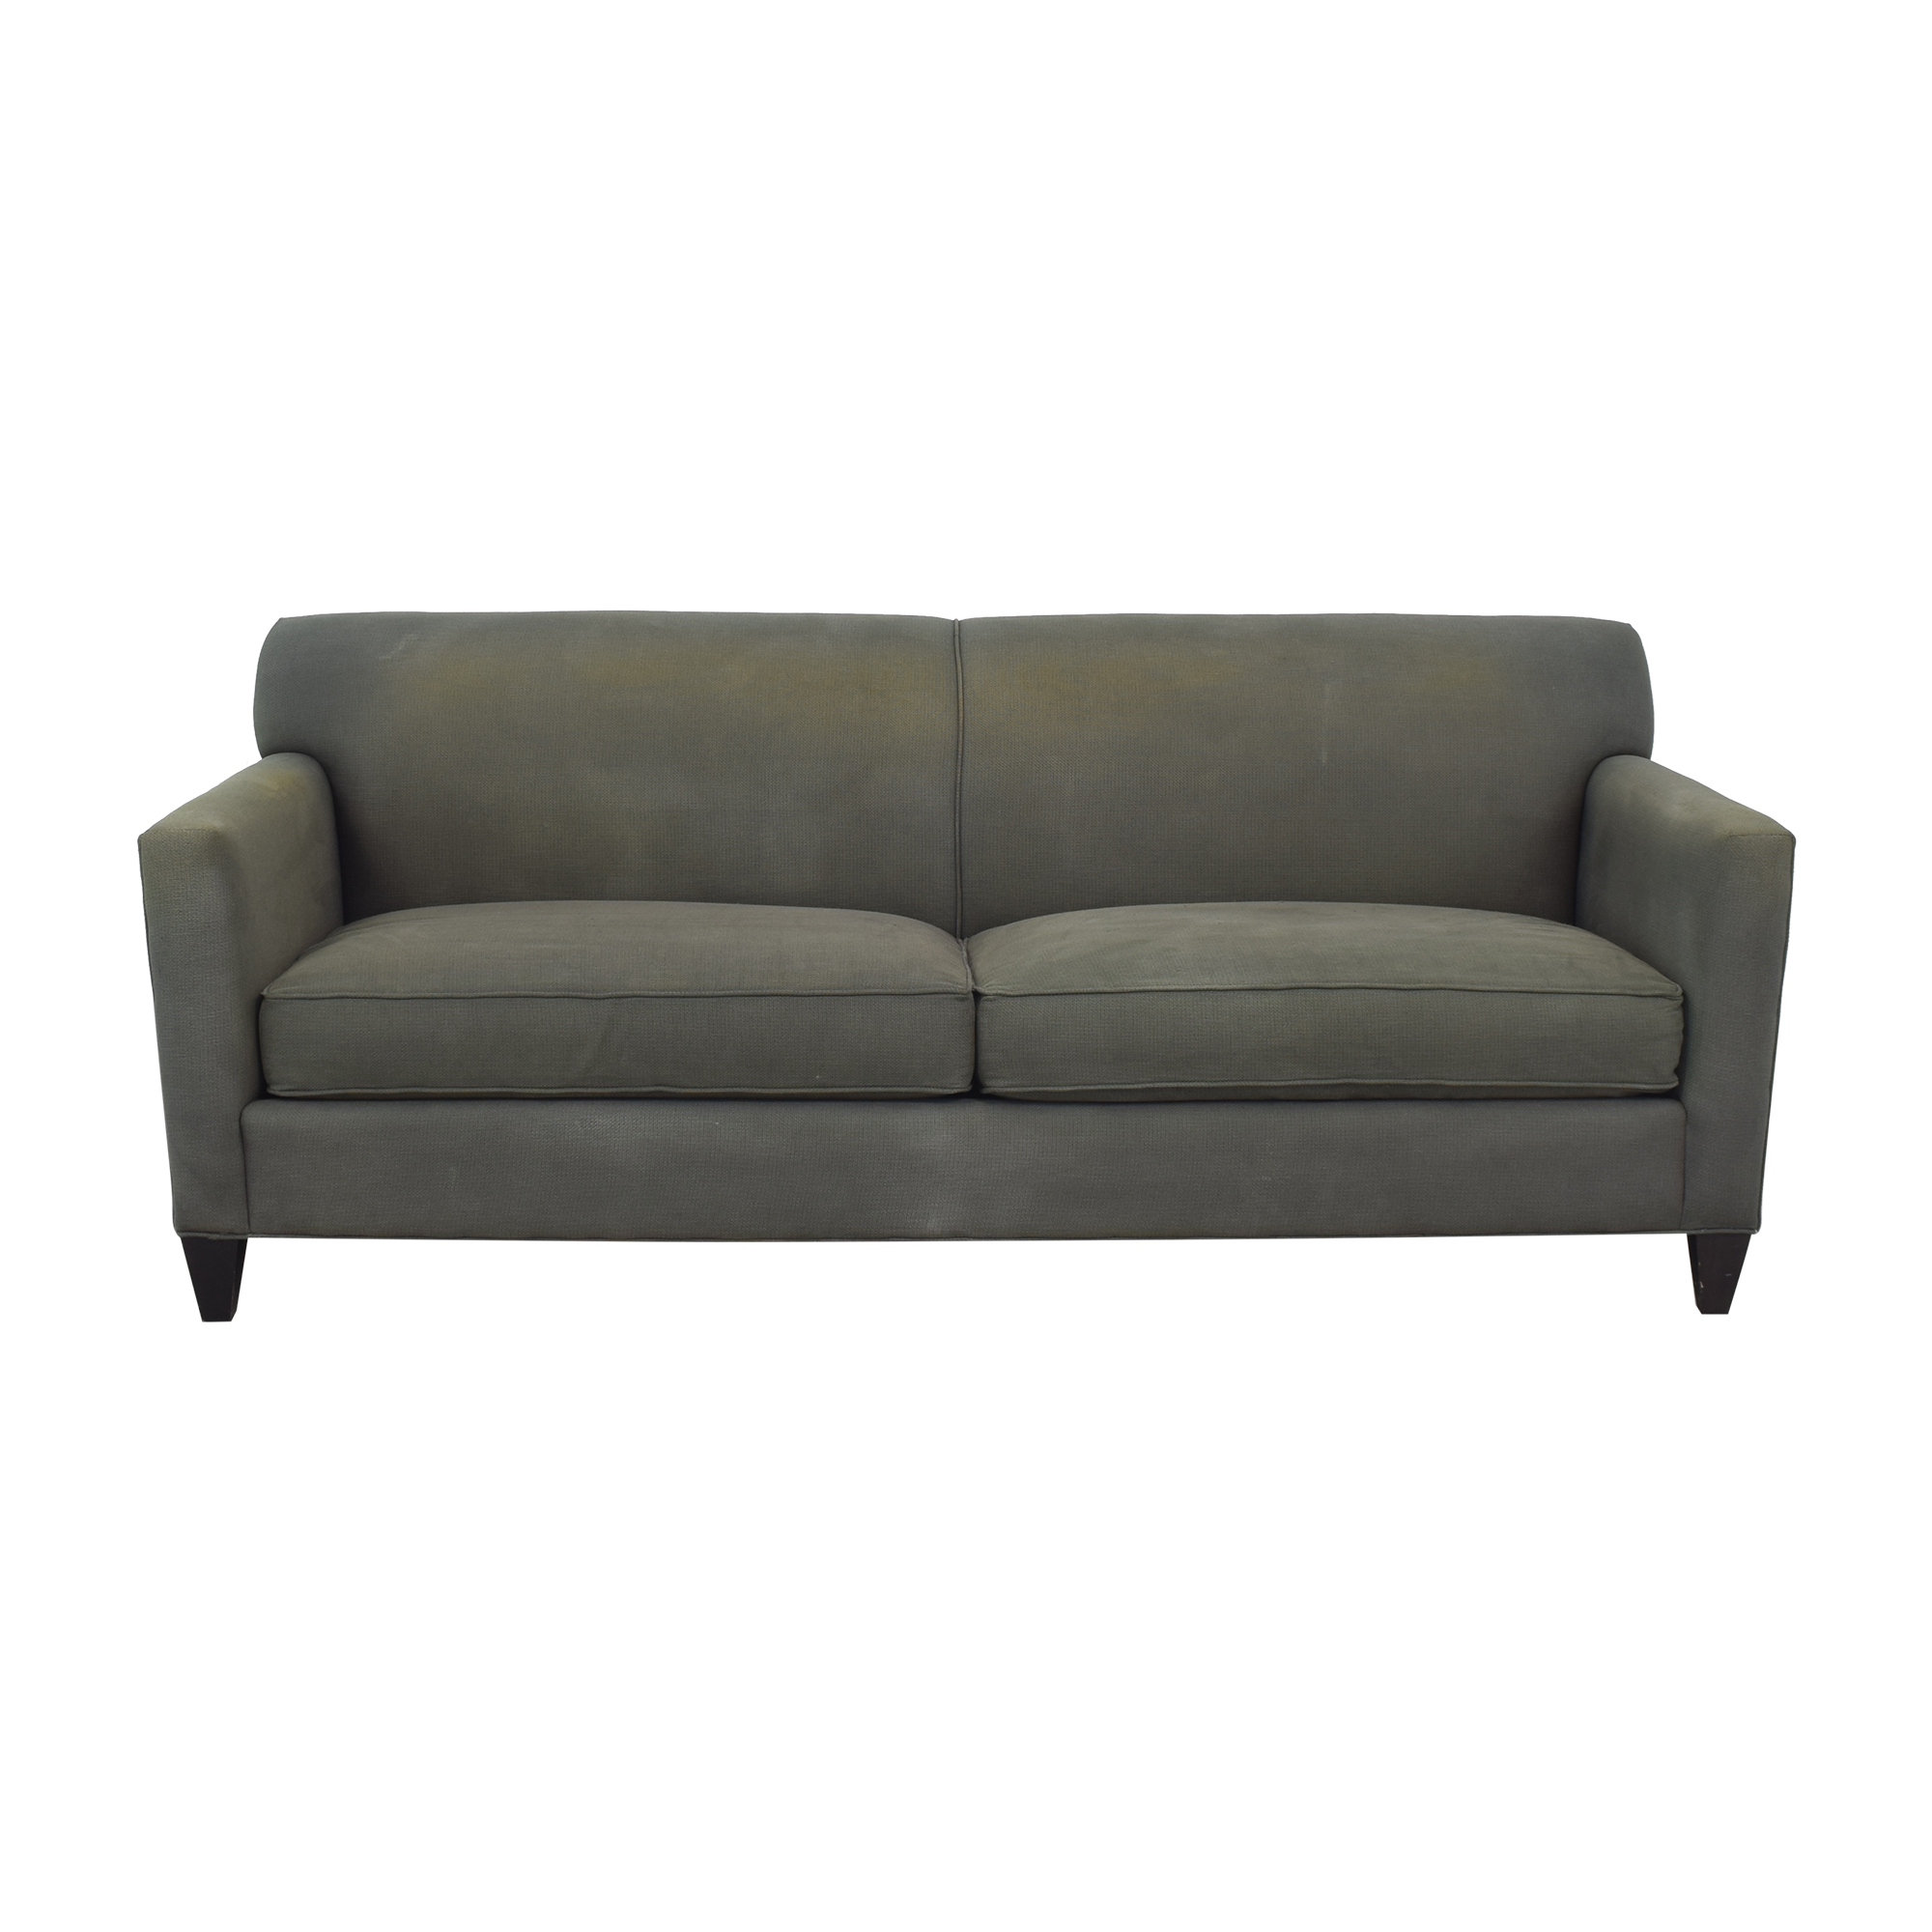 shop Crate & Barrel Hennessy Sofa Crate & Barrel Classic Sofas